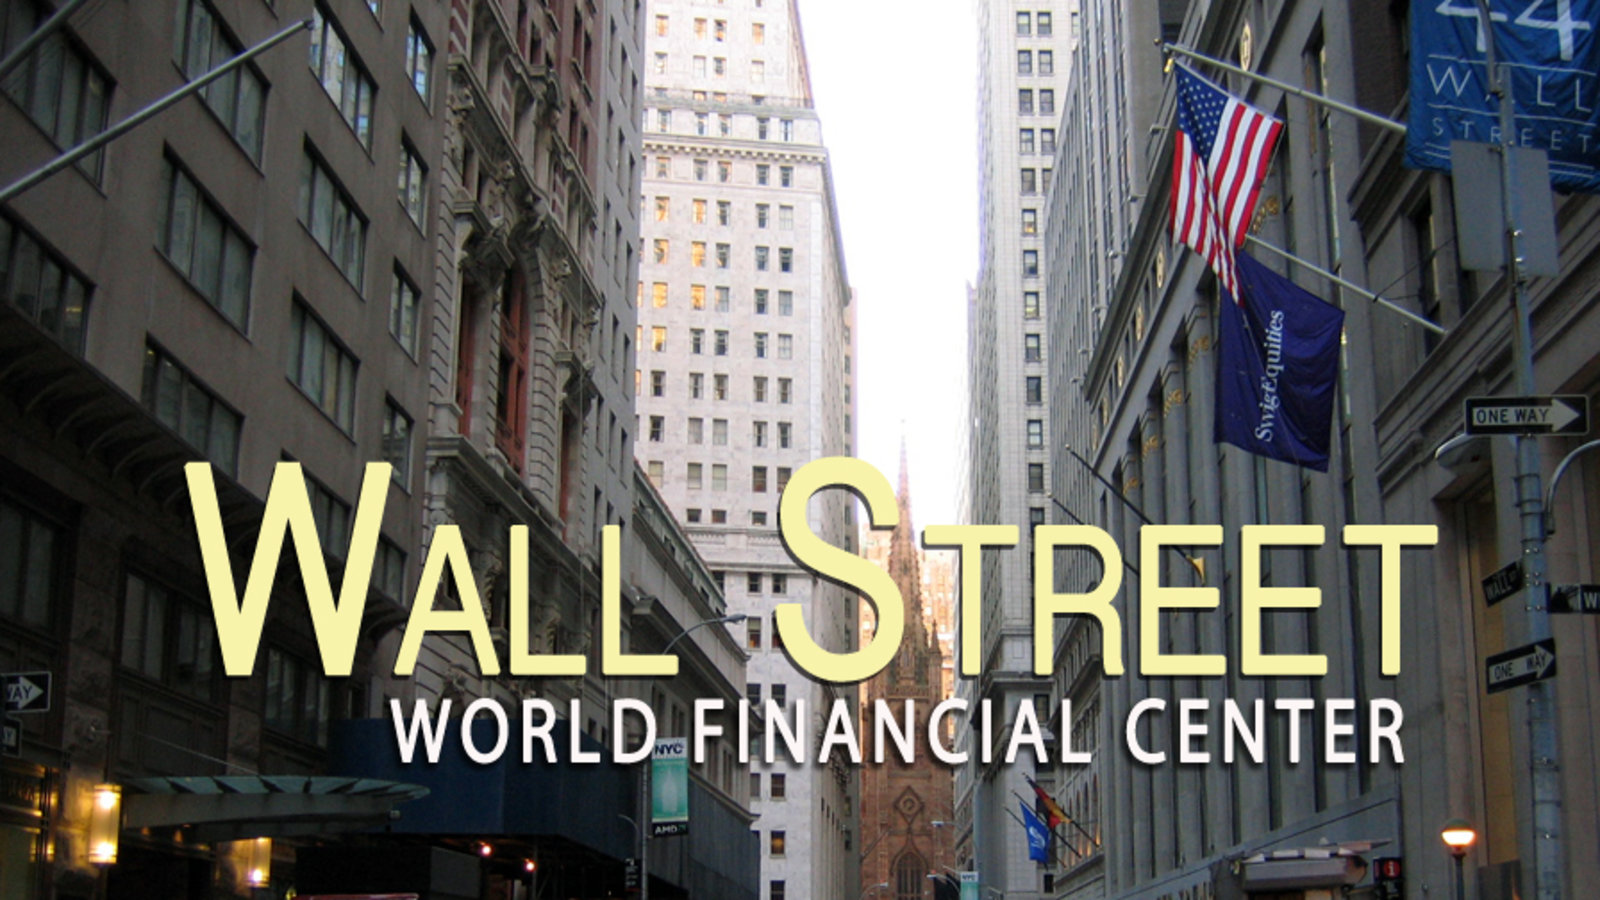 Wall Street: World Financial Center